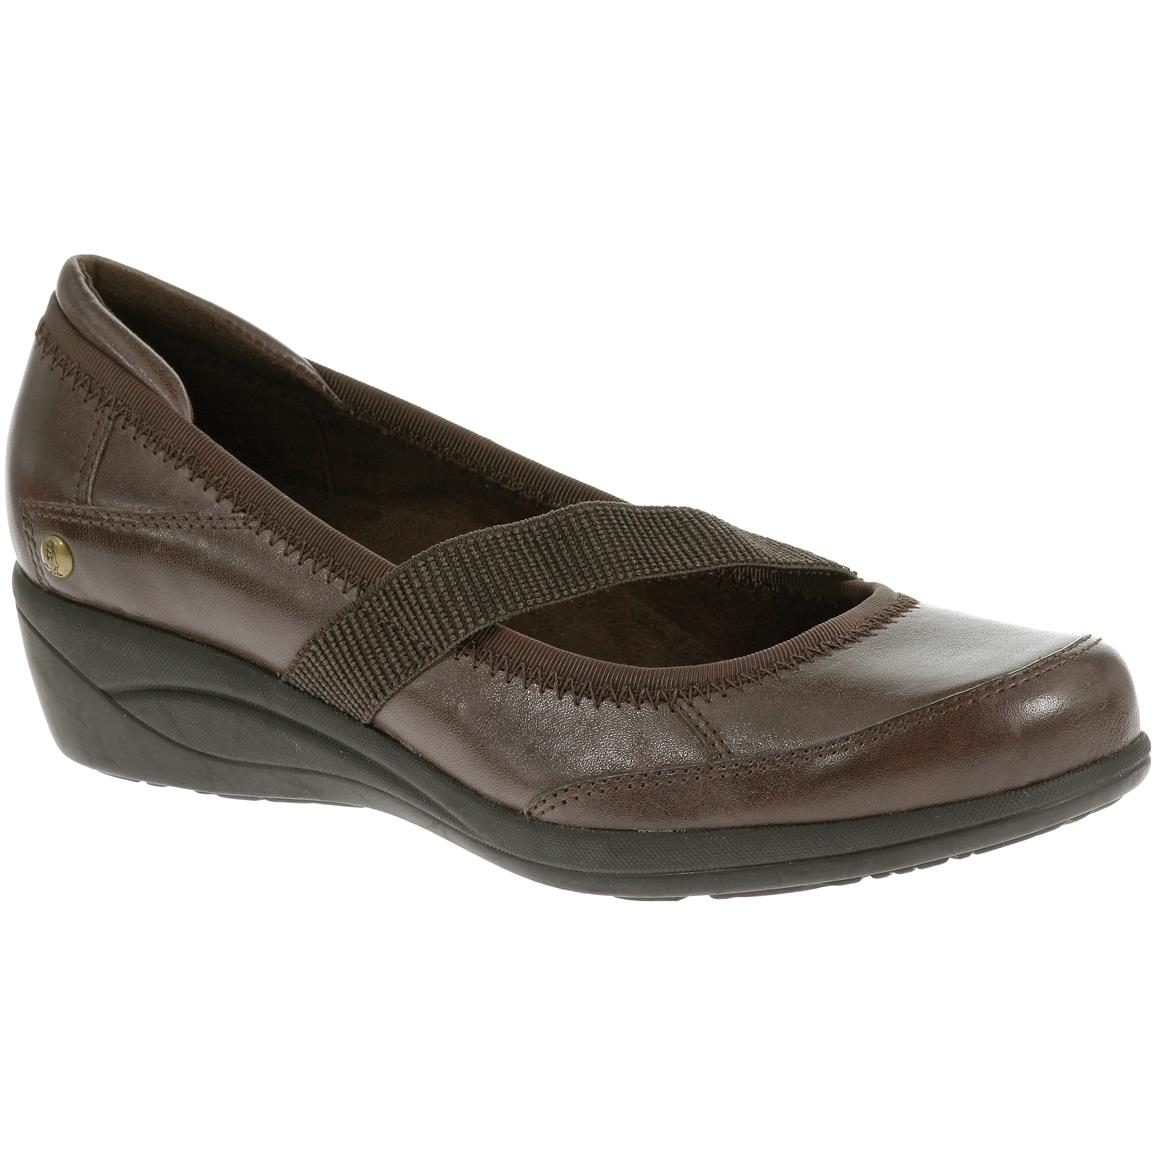 Hush Puppies Women's Velma Oleena Casual Shoes, Dark Brown Leather